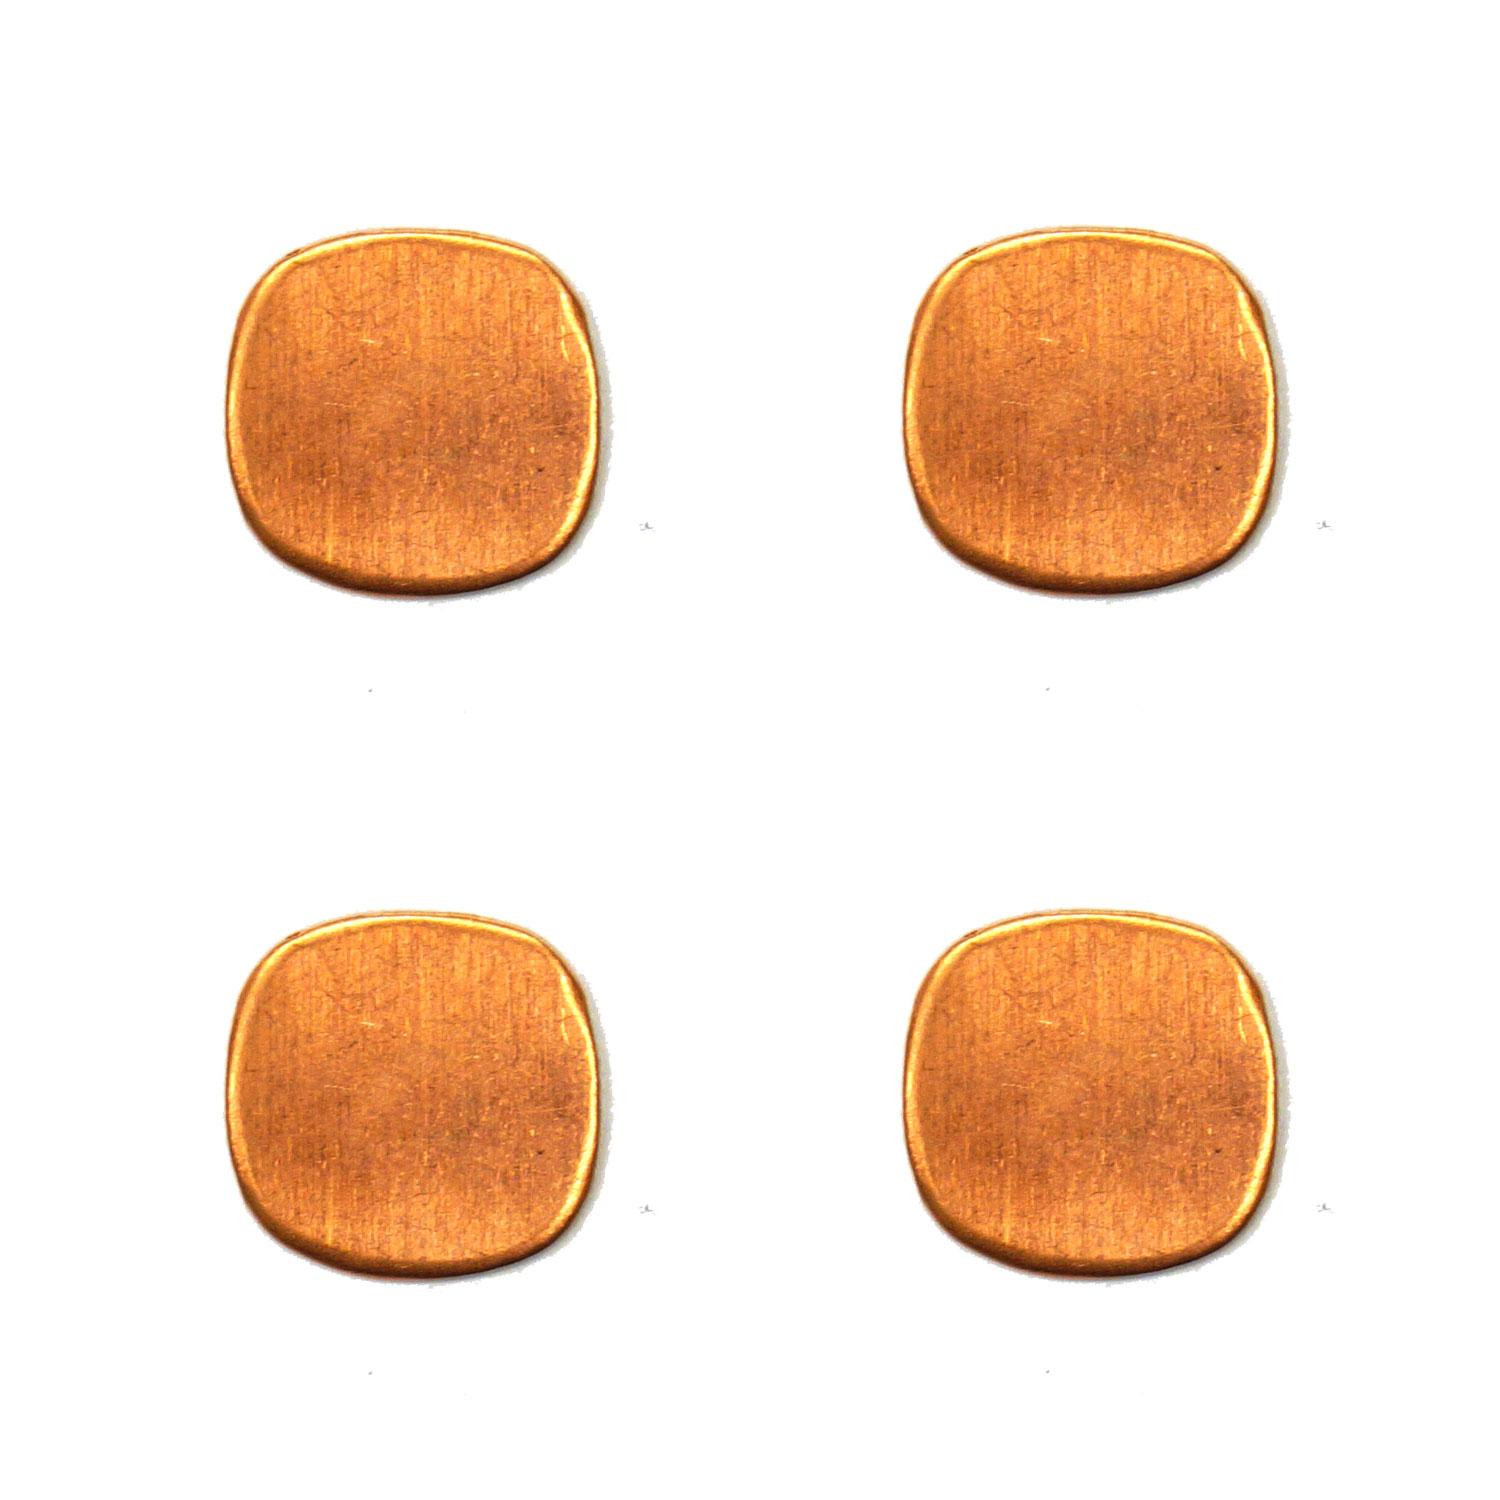 Small Rounded Square Copper Shape - 4 Pack